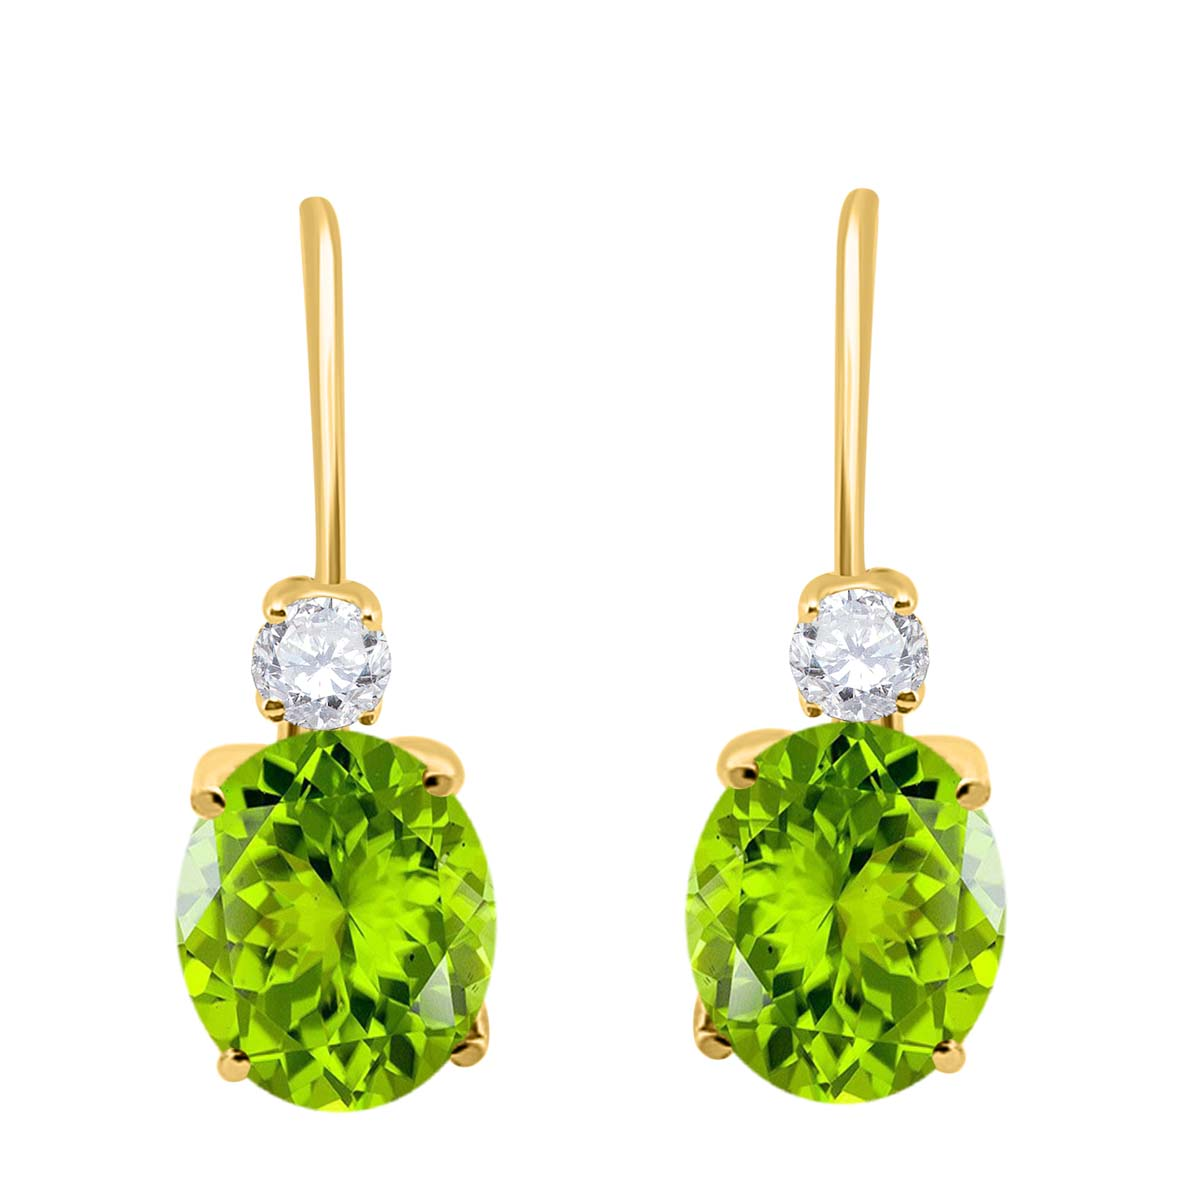 2.7 Carat 8×6 Gemstone And Diamond Leverback Earrings sets for girls or Women Peridot 14K Yellow Gold 4 Prong-Setting Oval adultsthis is the lovely gift for anniversary